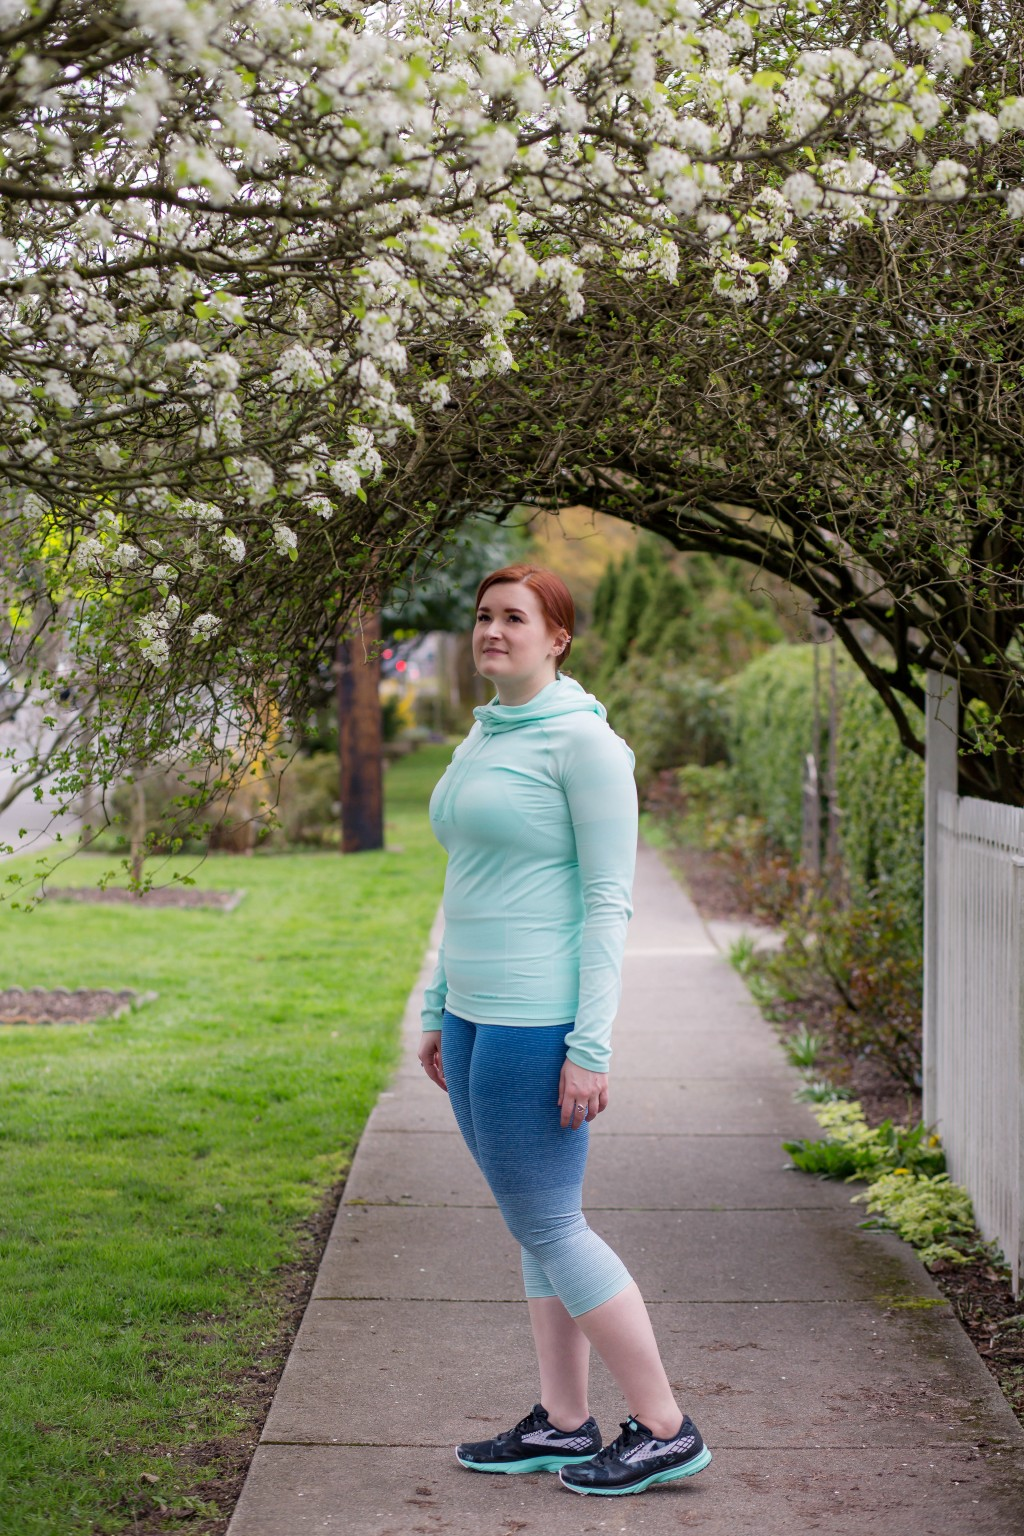 6 - Kate Retherford of All Things Kate, Seattle Health & Fitness Blogger